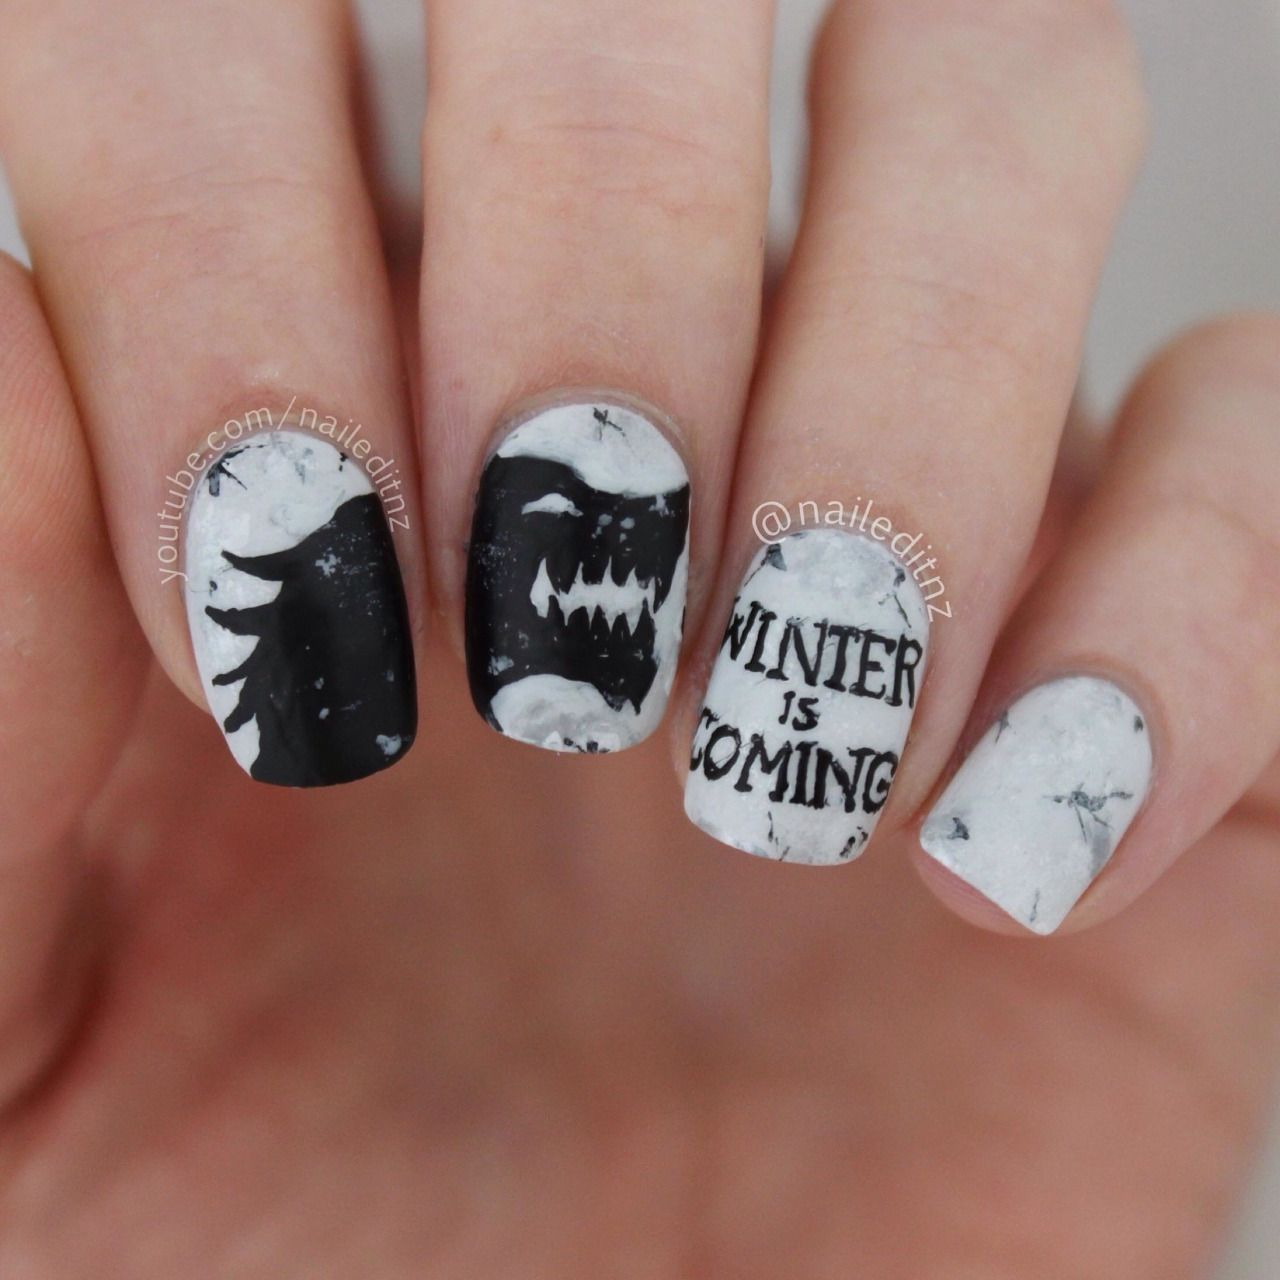 Game of thrones nail art! Watch here: https://youtu.be/tOBfSauPIcw ...